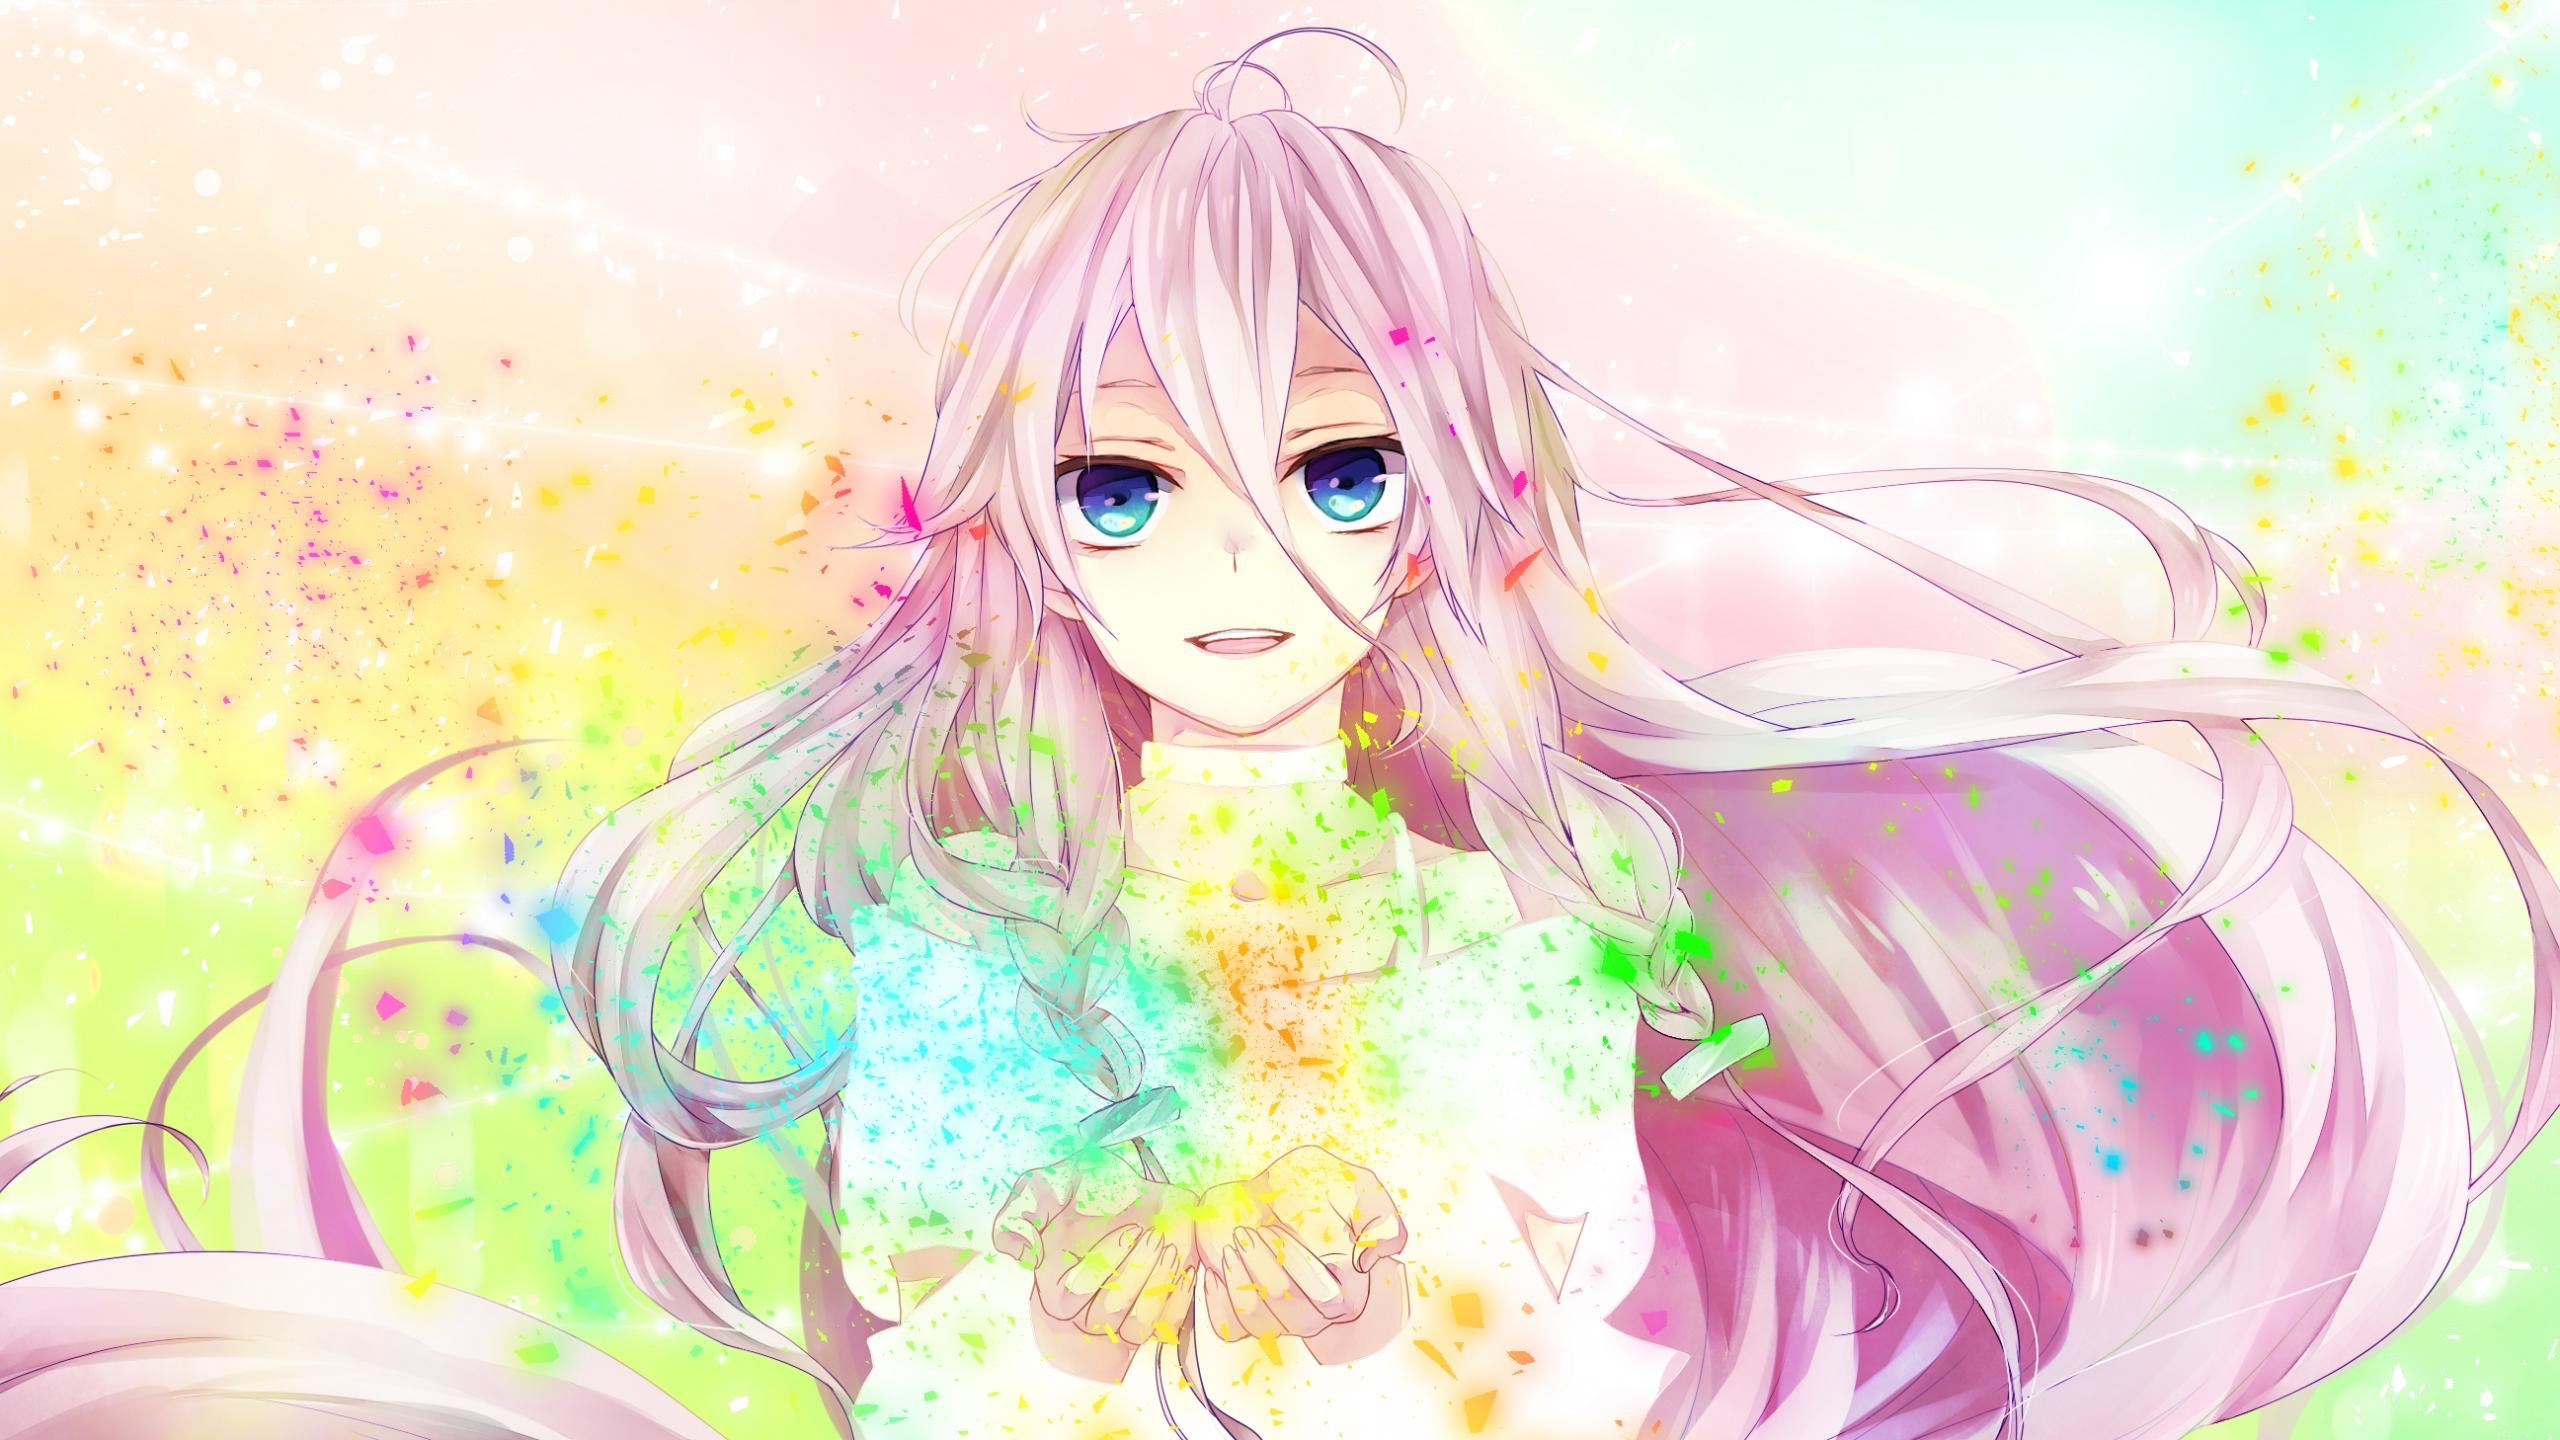 Download hd 2560x1440 IA (Vocaloid) desktop background ID:3865 for free